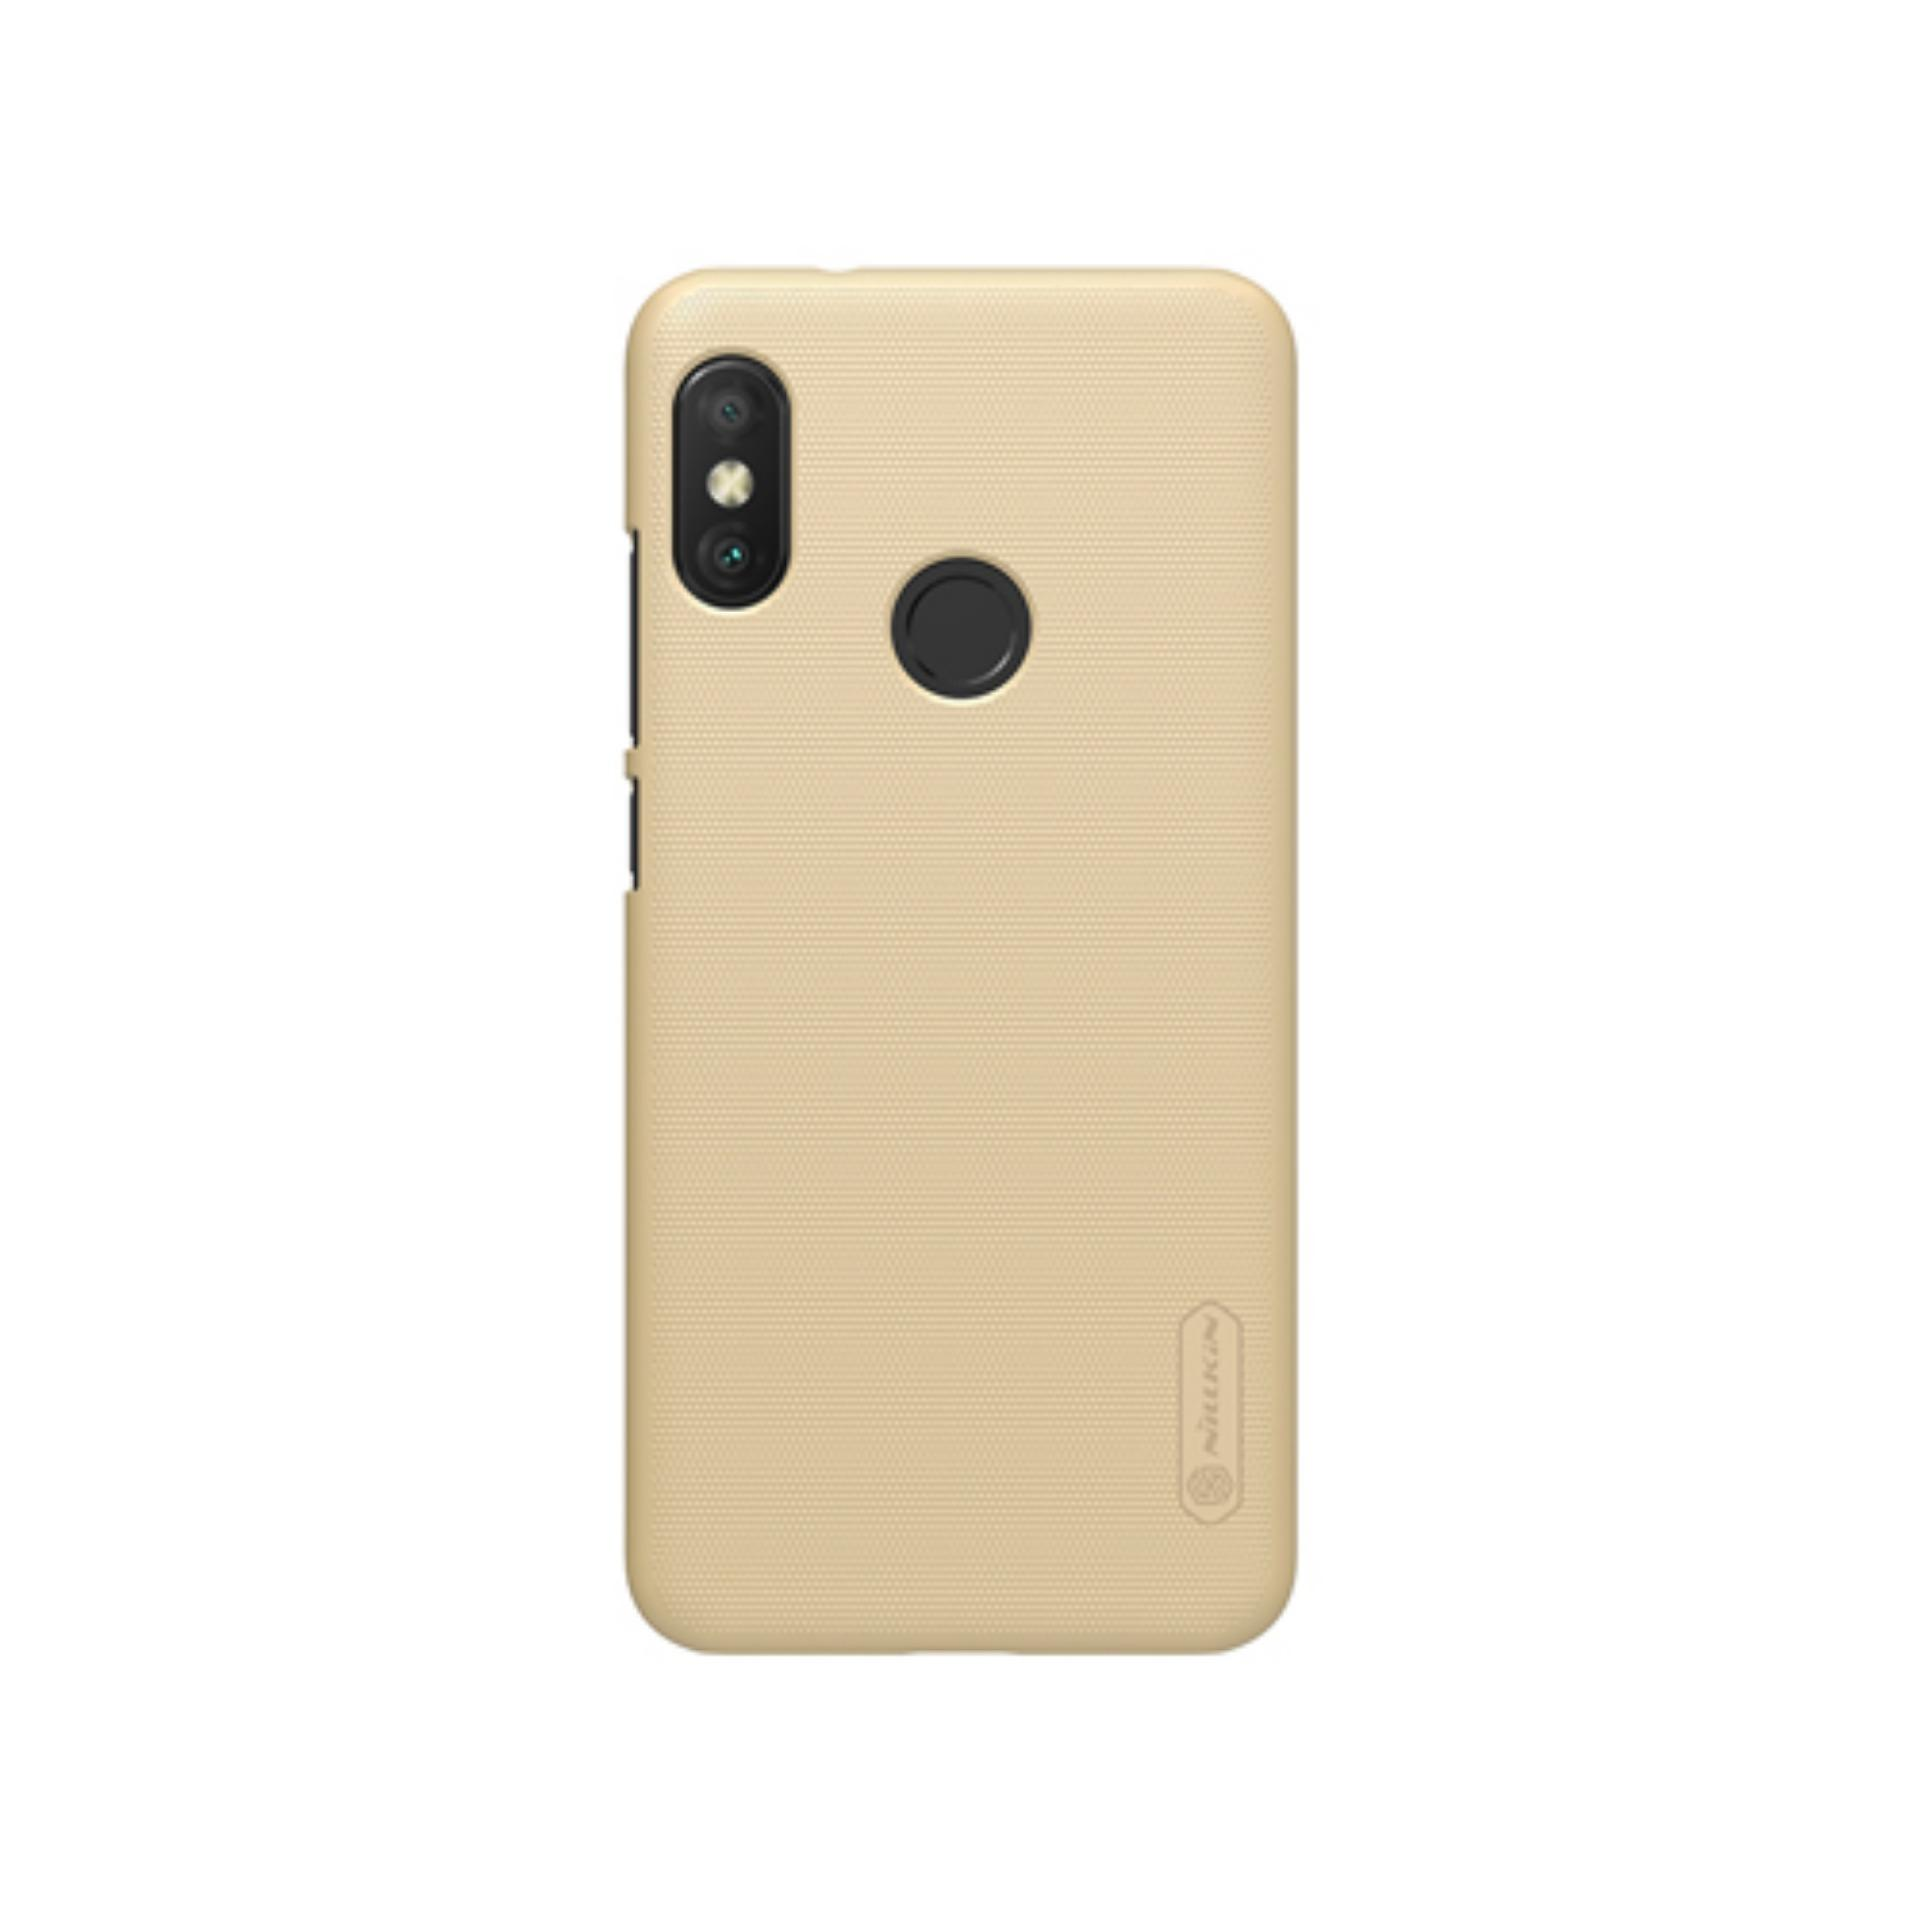 Nillkin ORIGINAL Super Frosted Shield Xiaomi Redmi 6 Pro Gold/Emas Hardcase Backcase Backcover Case